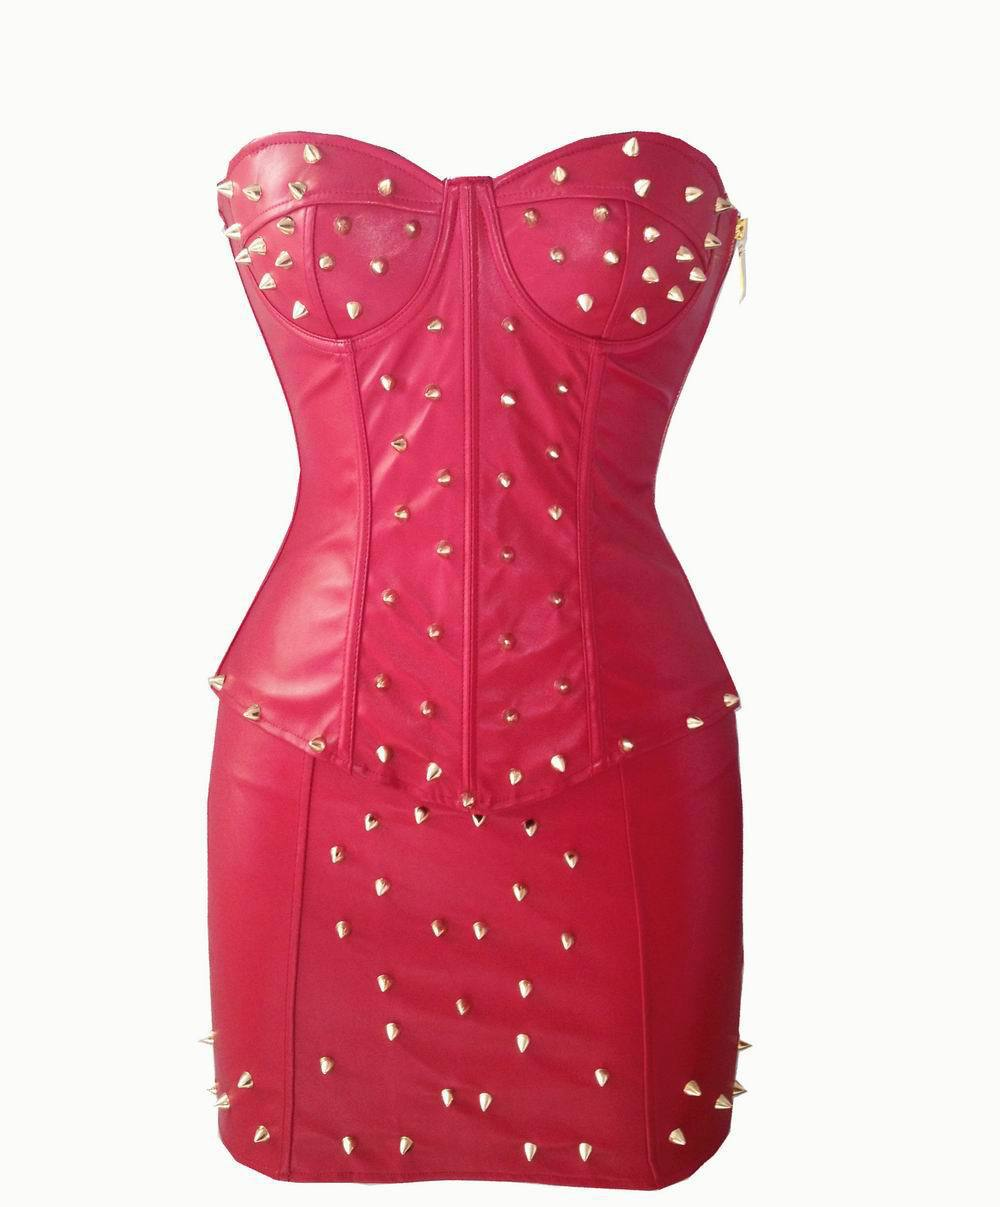 e457da541e9 Get Quotations · Free shipping Fashion new style Corset and skirt with  spikes Top Bustier Faux Leather Corsets PP9054